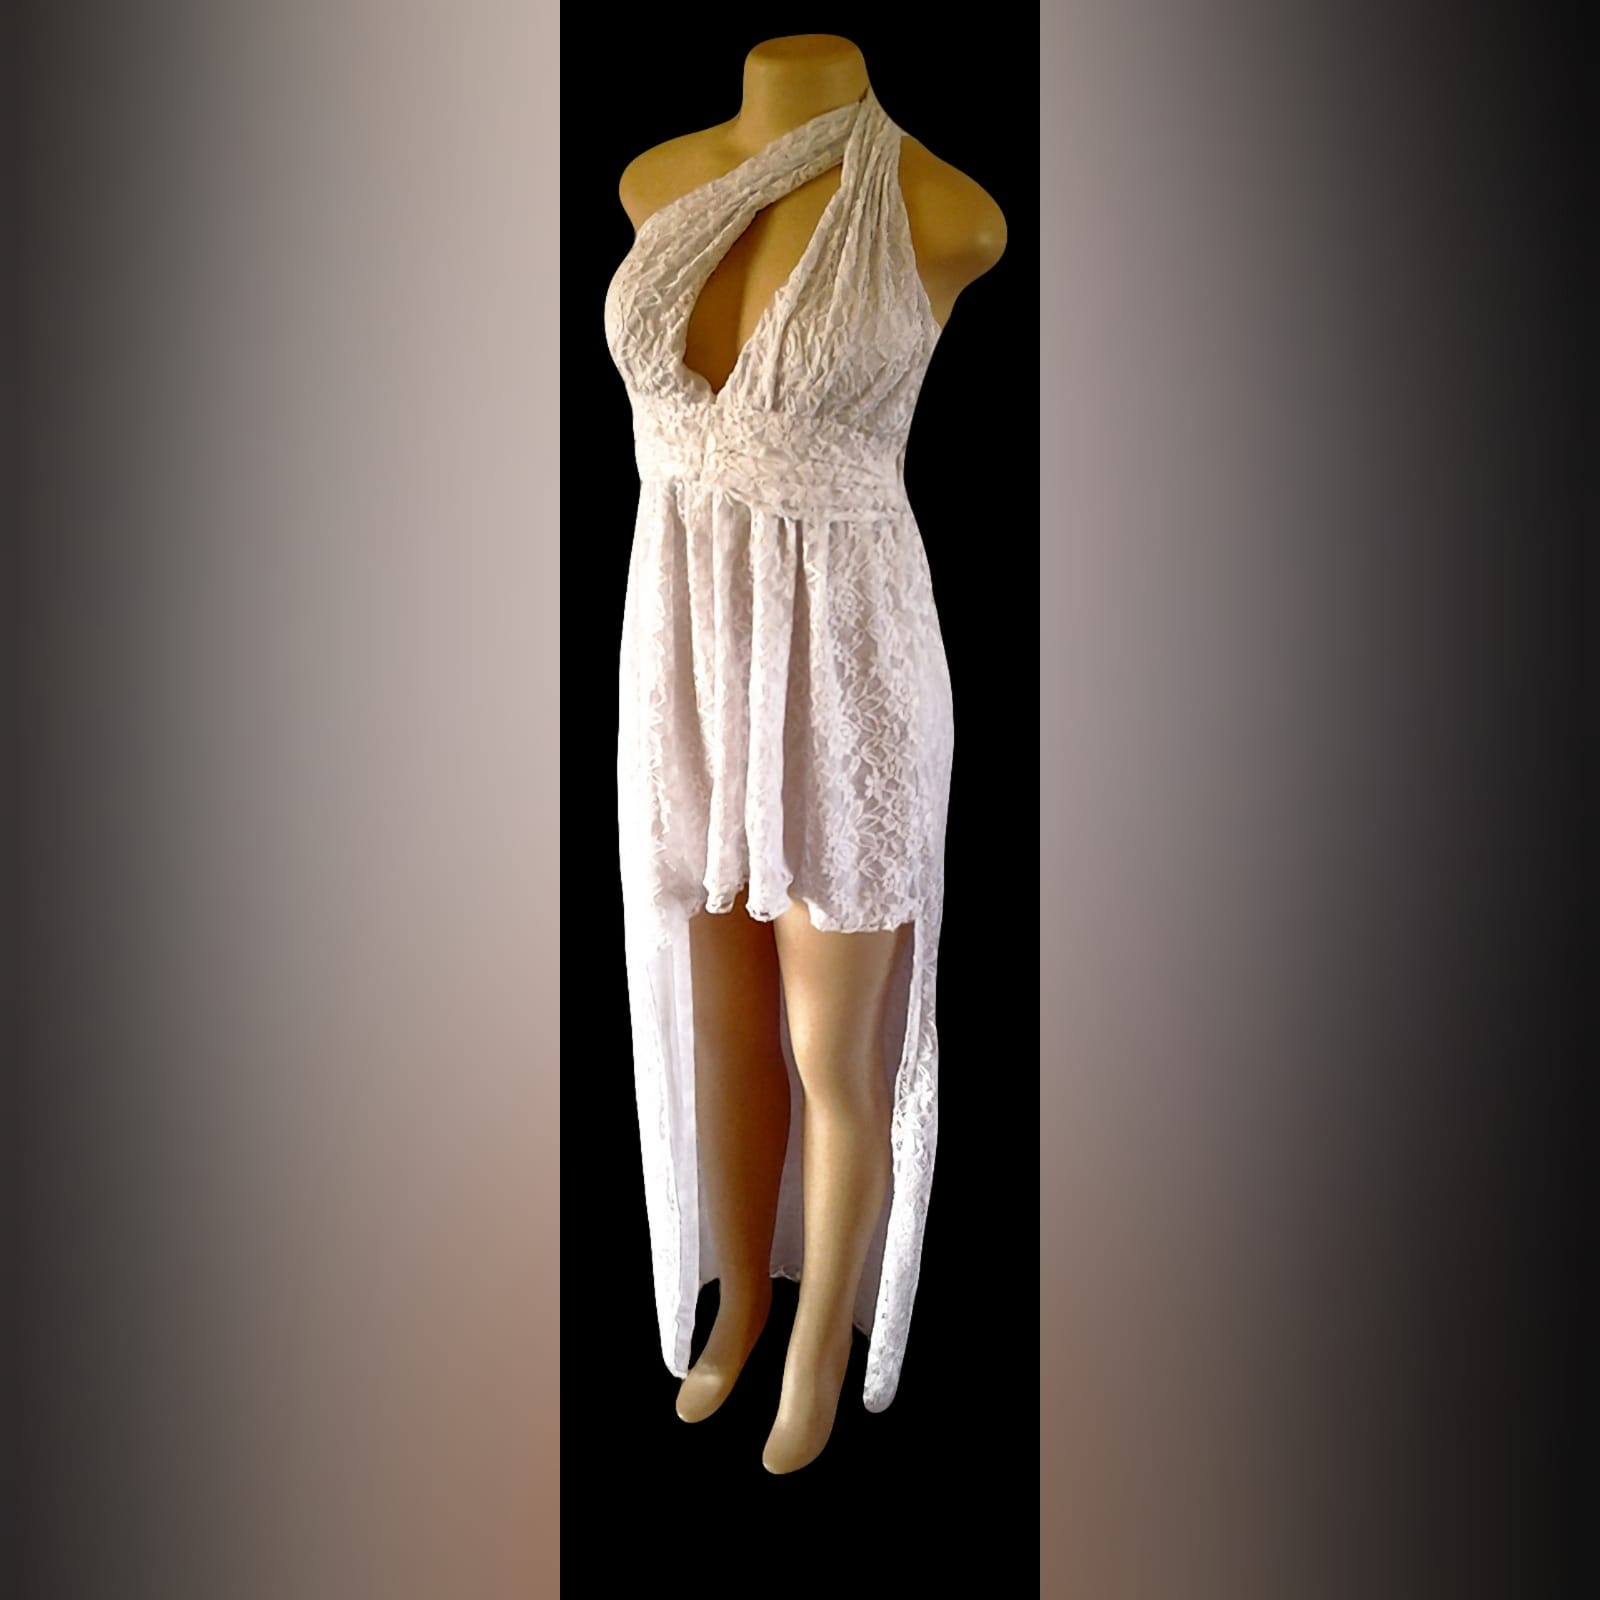 White side high low lace party dress 3 white side high low lace party dress with a cleavage opening and a ruched belt.